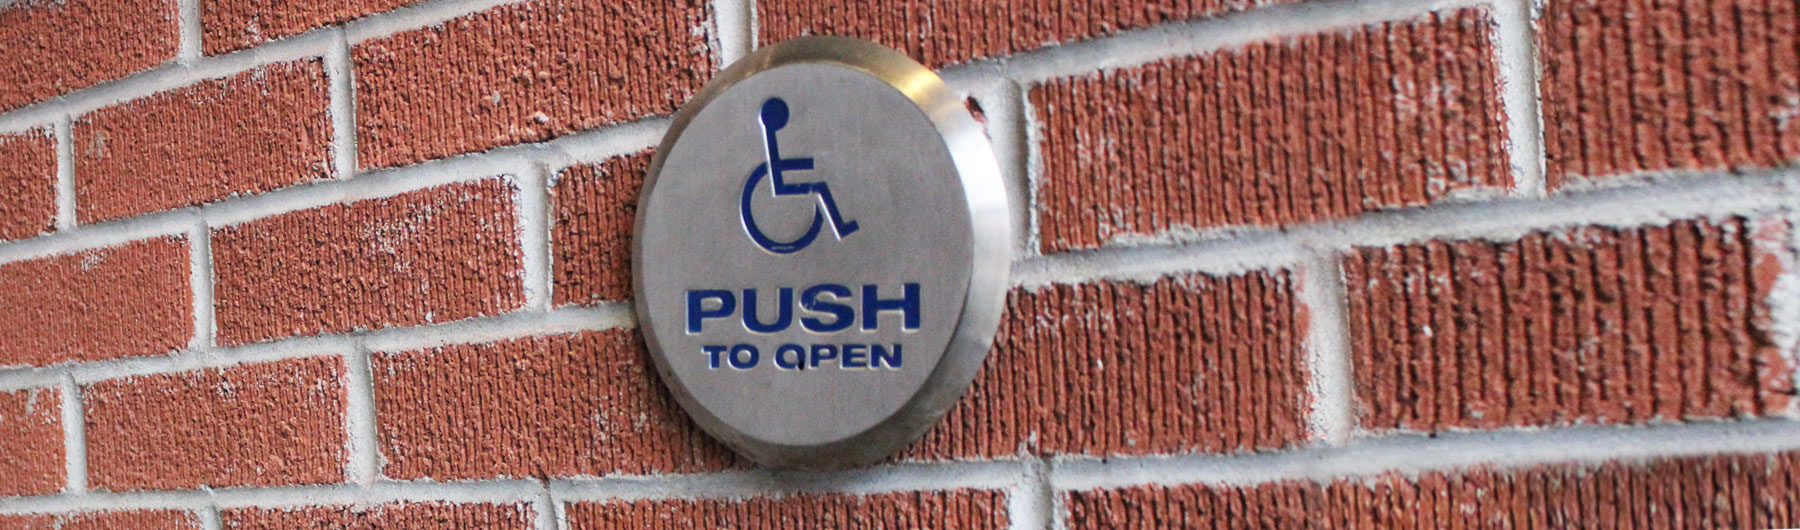 accessible door opener button on a brick wall